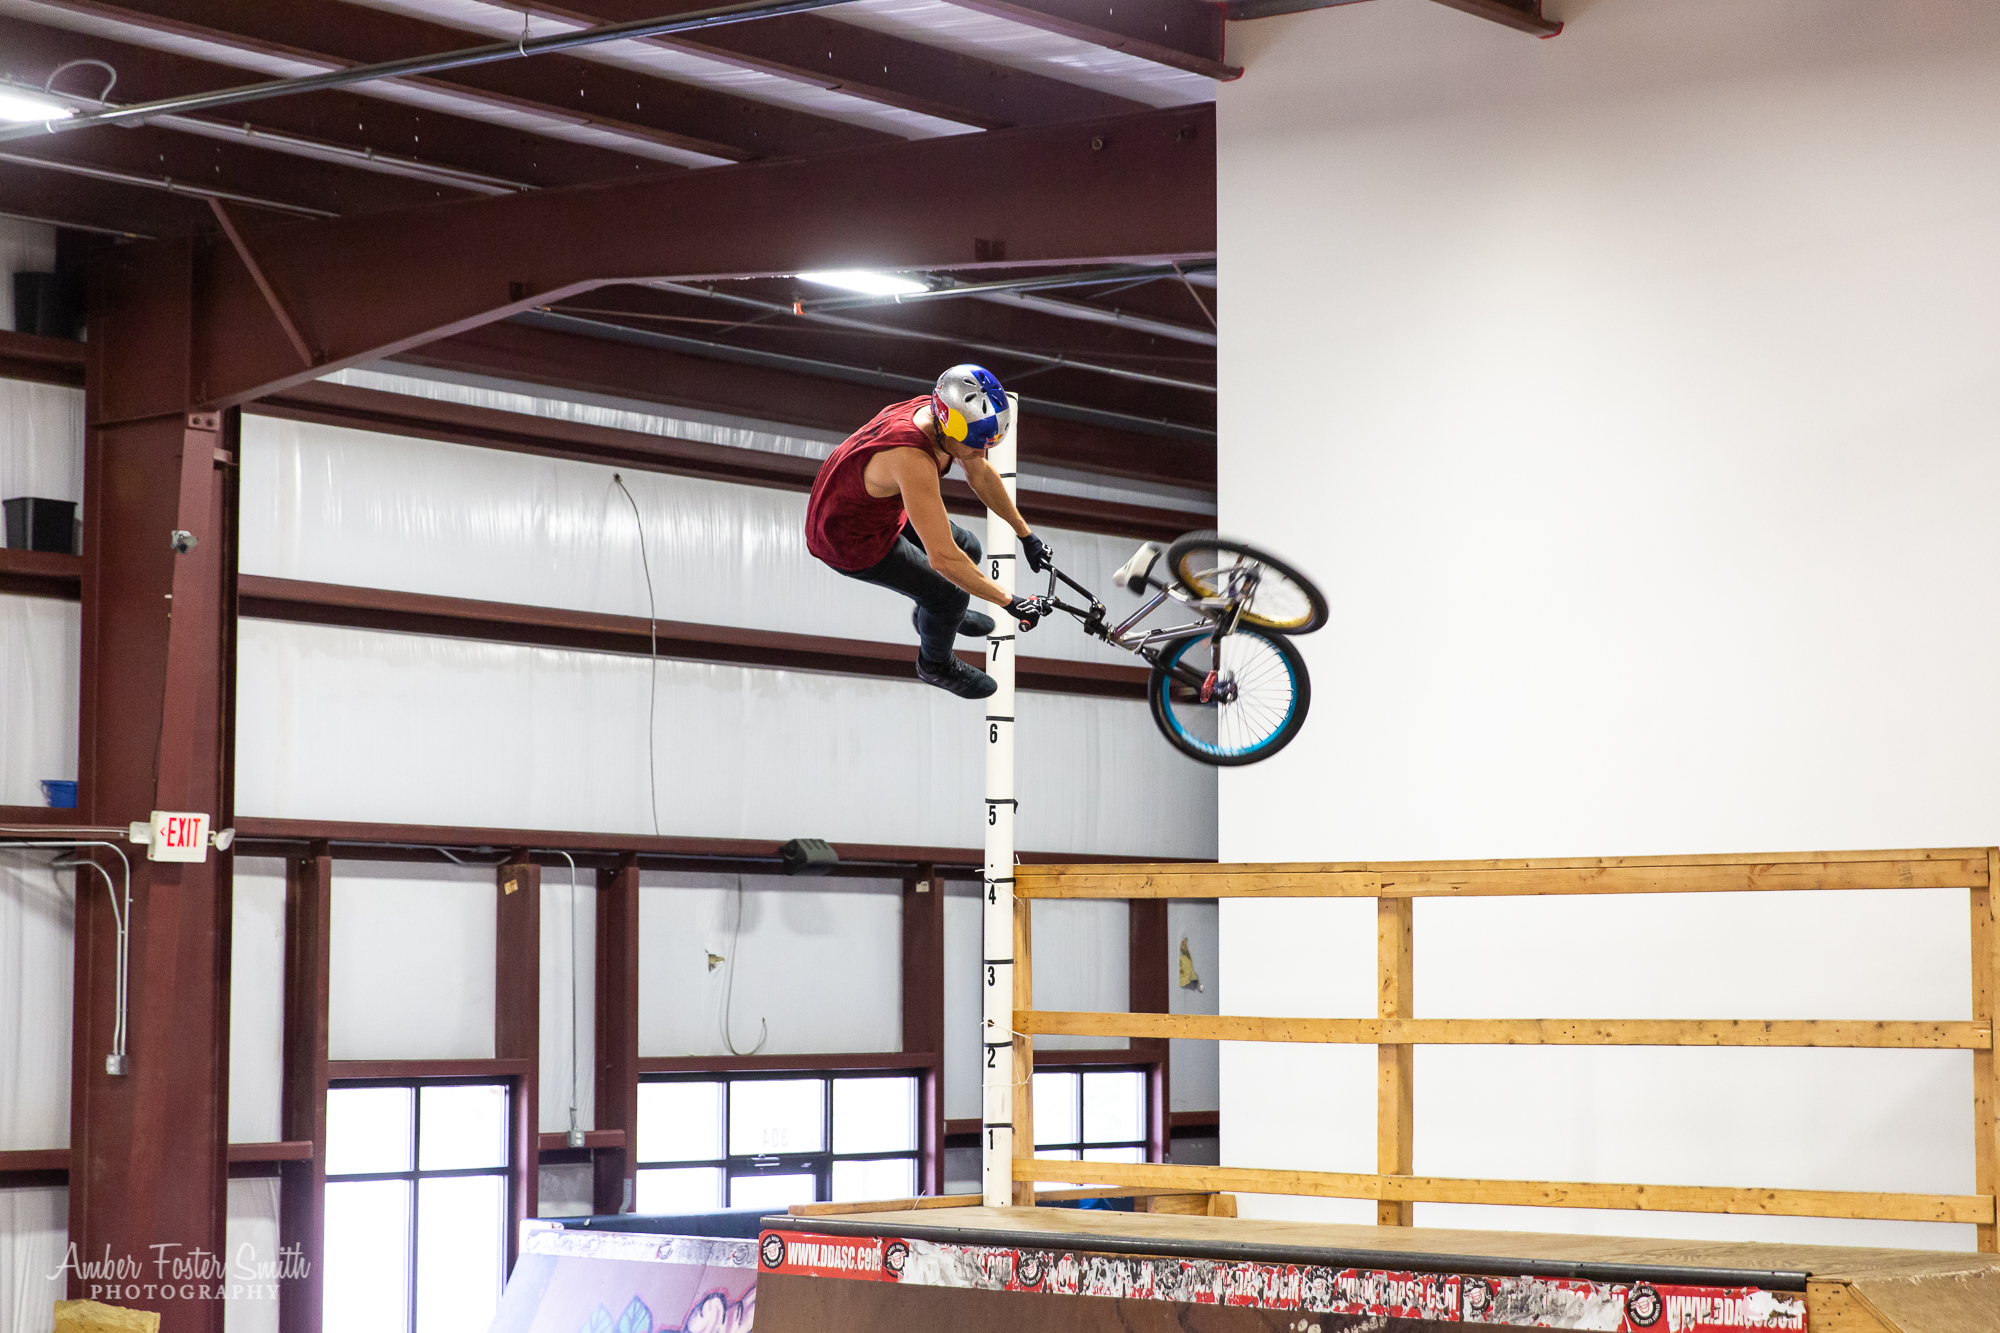 Man on BMX bike doing a flip on a half pipe